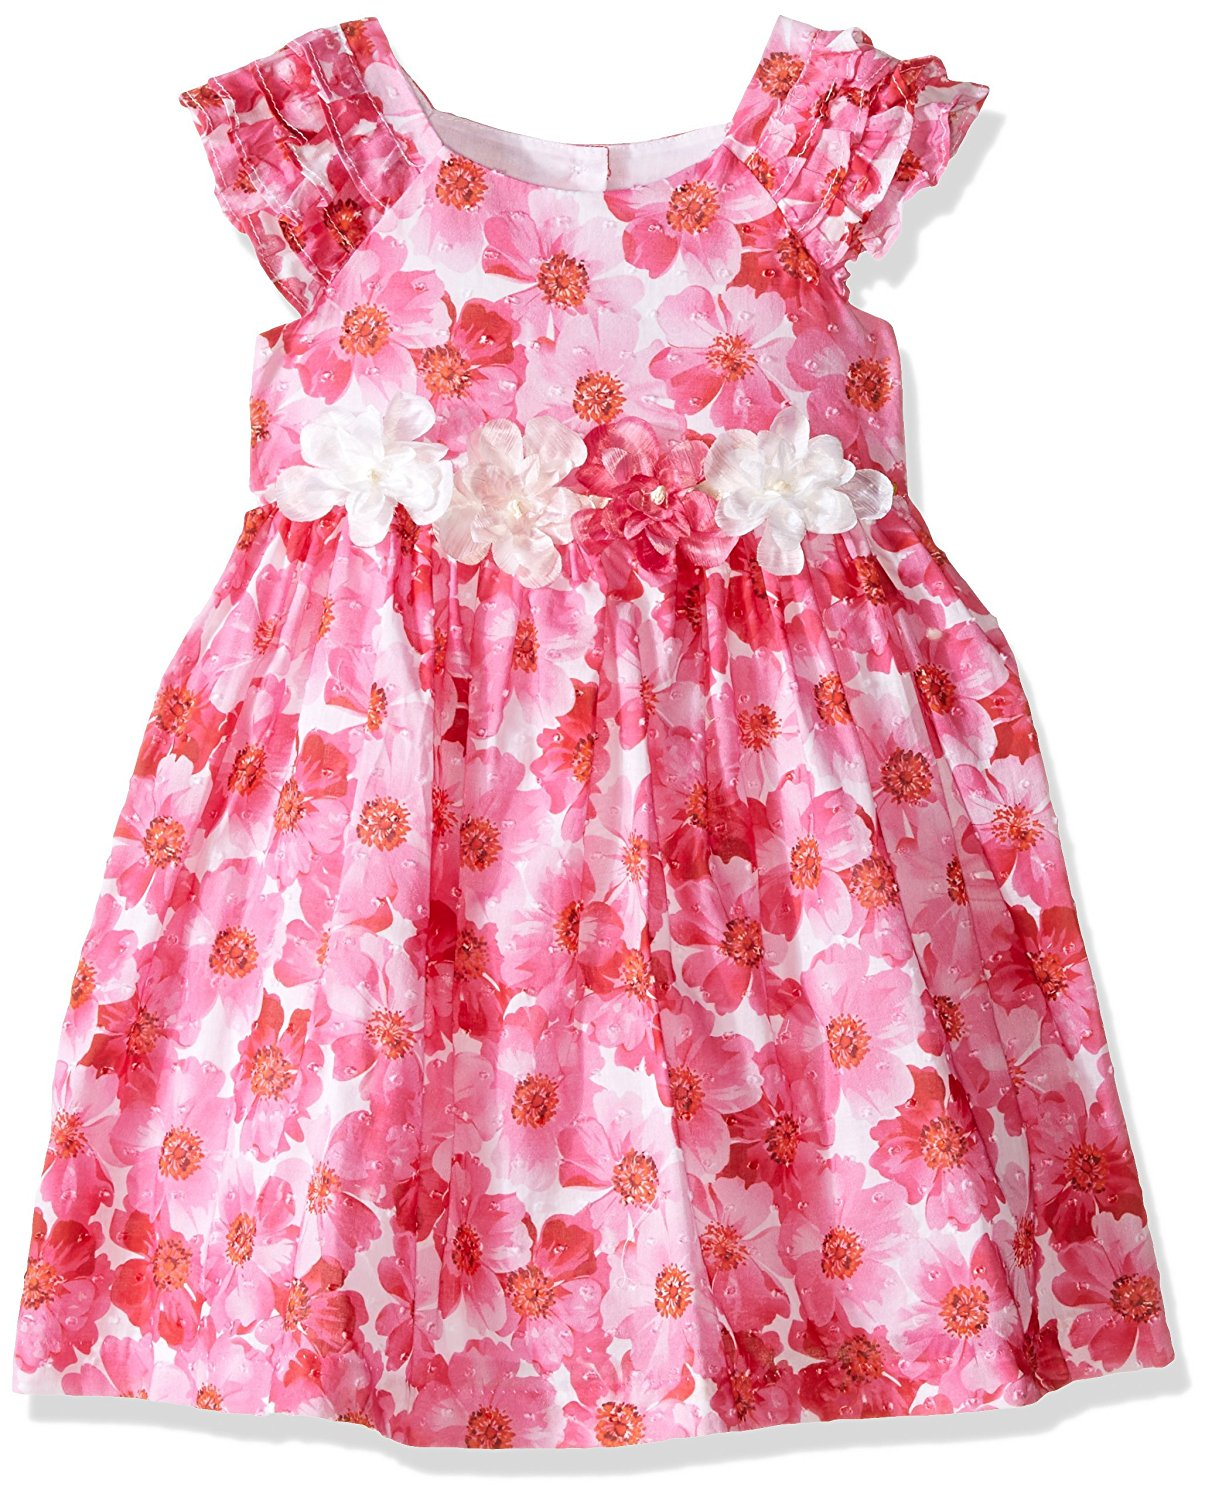 Buy Laura Ashley London Little Girls Brocade Dress In Cheap Price On